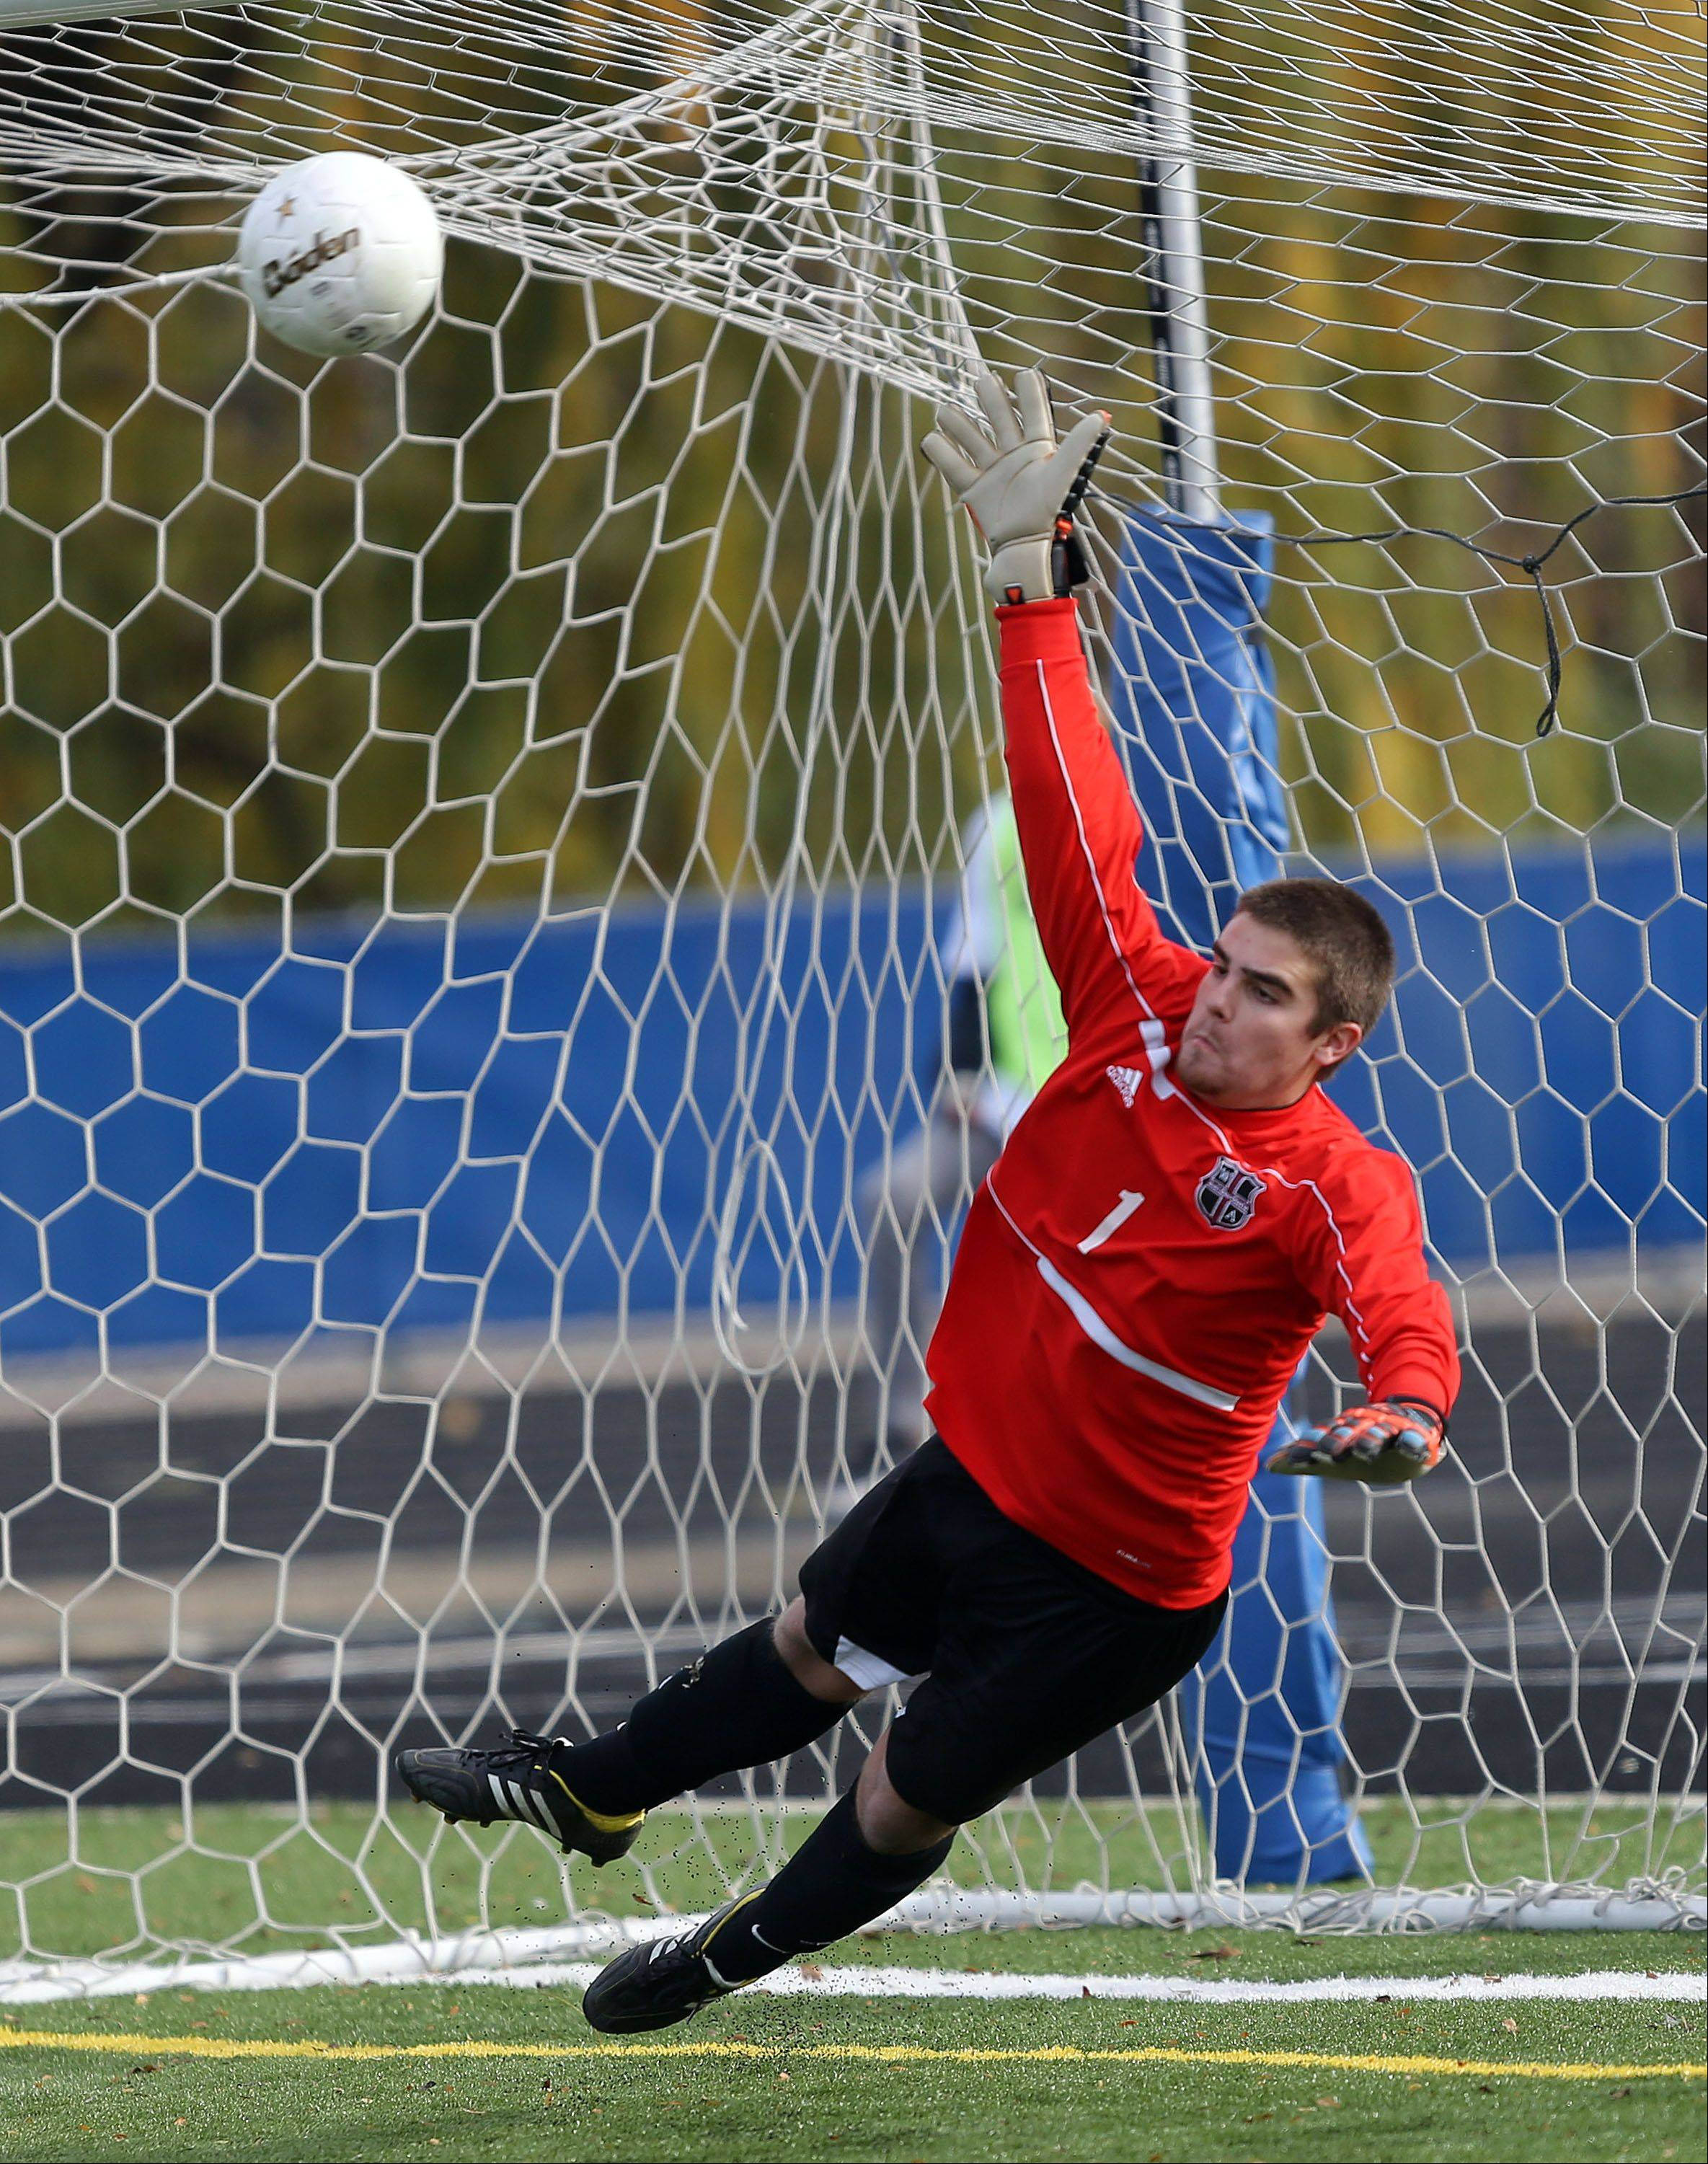 Wheaton Academy's Drew Sezonov makes a diving attempt during Friday's loss to St. Ignatius in Class 2A state semifinal soccer game at Hoffman Estates High School.